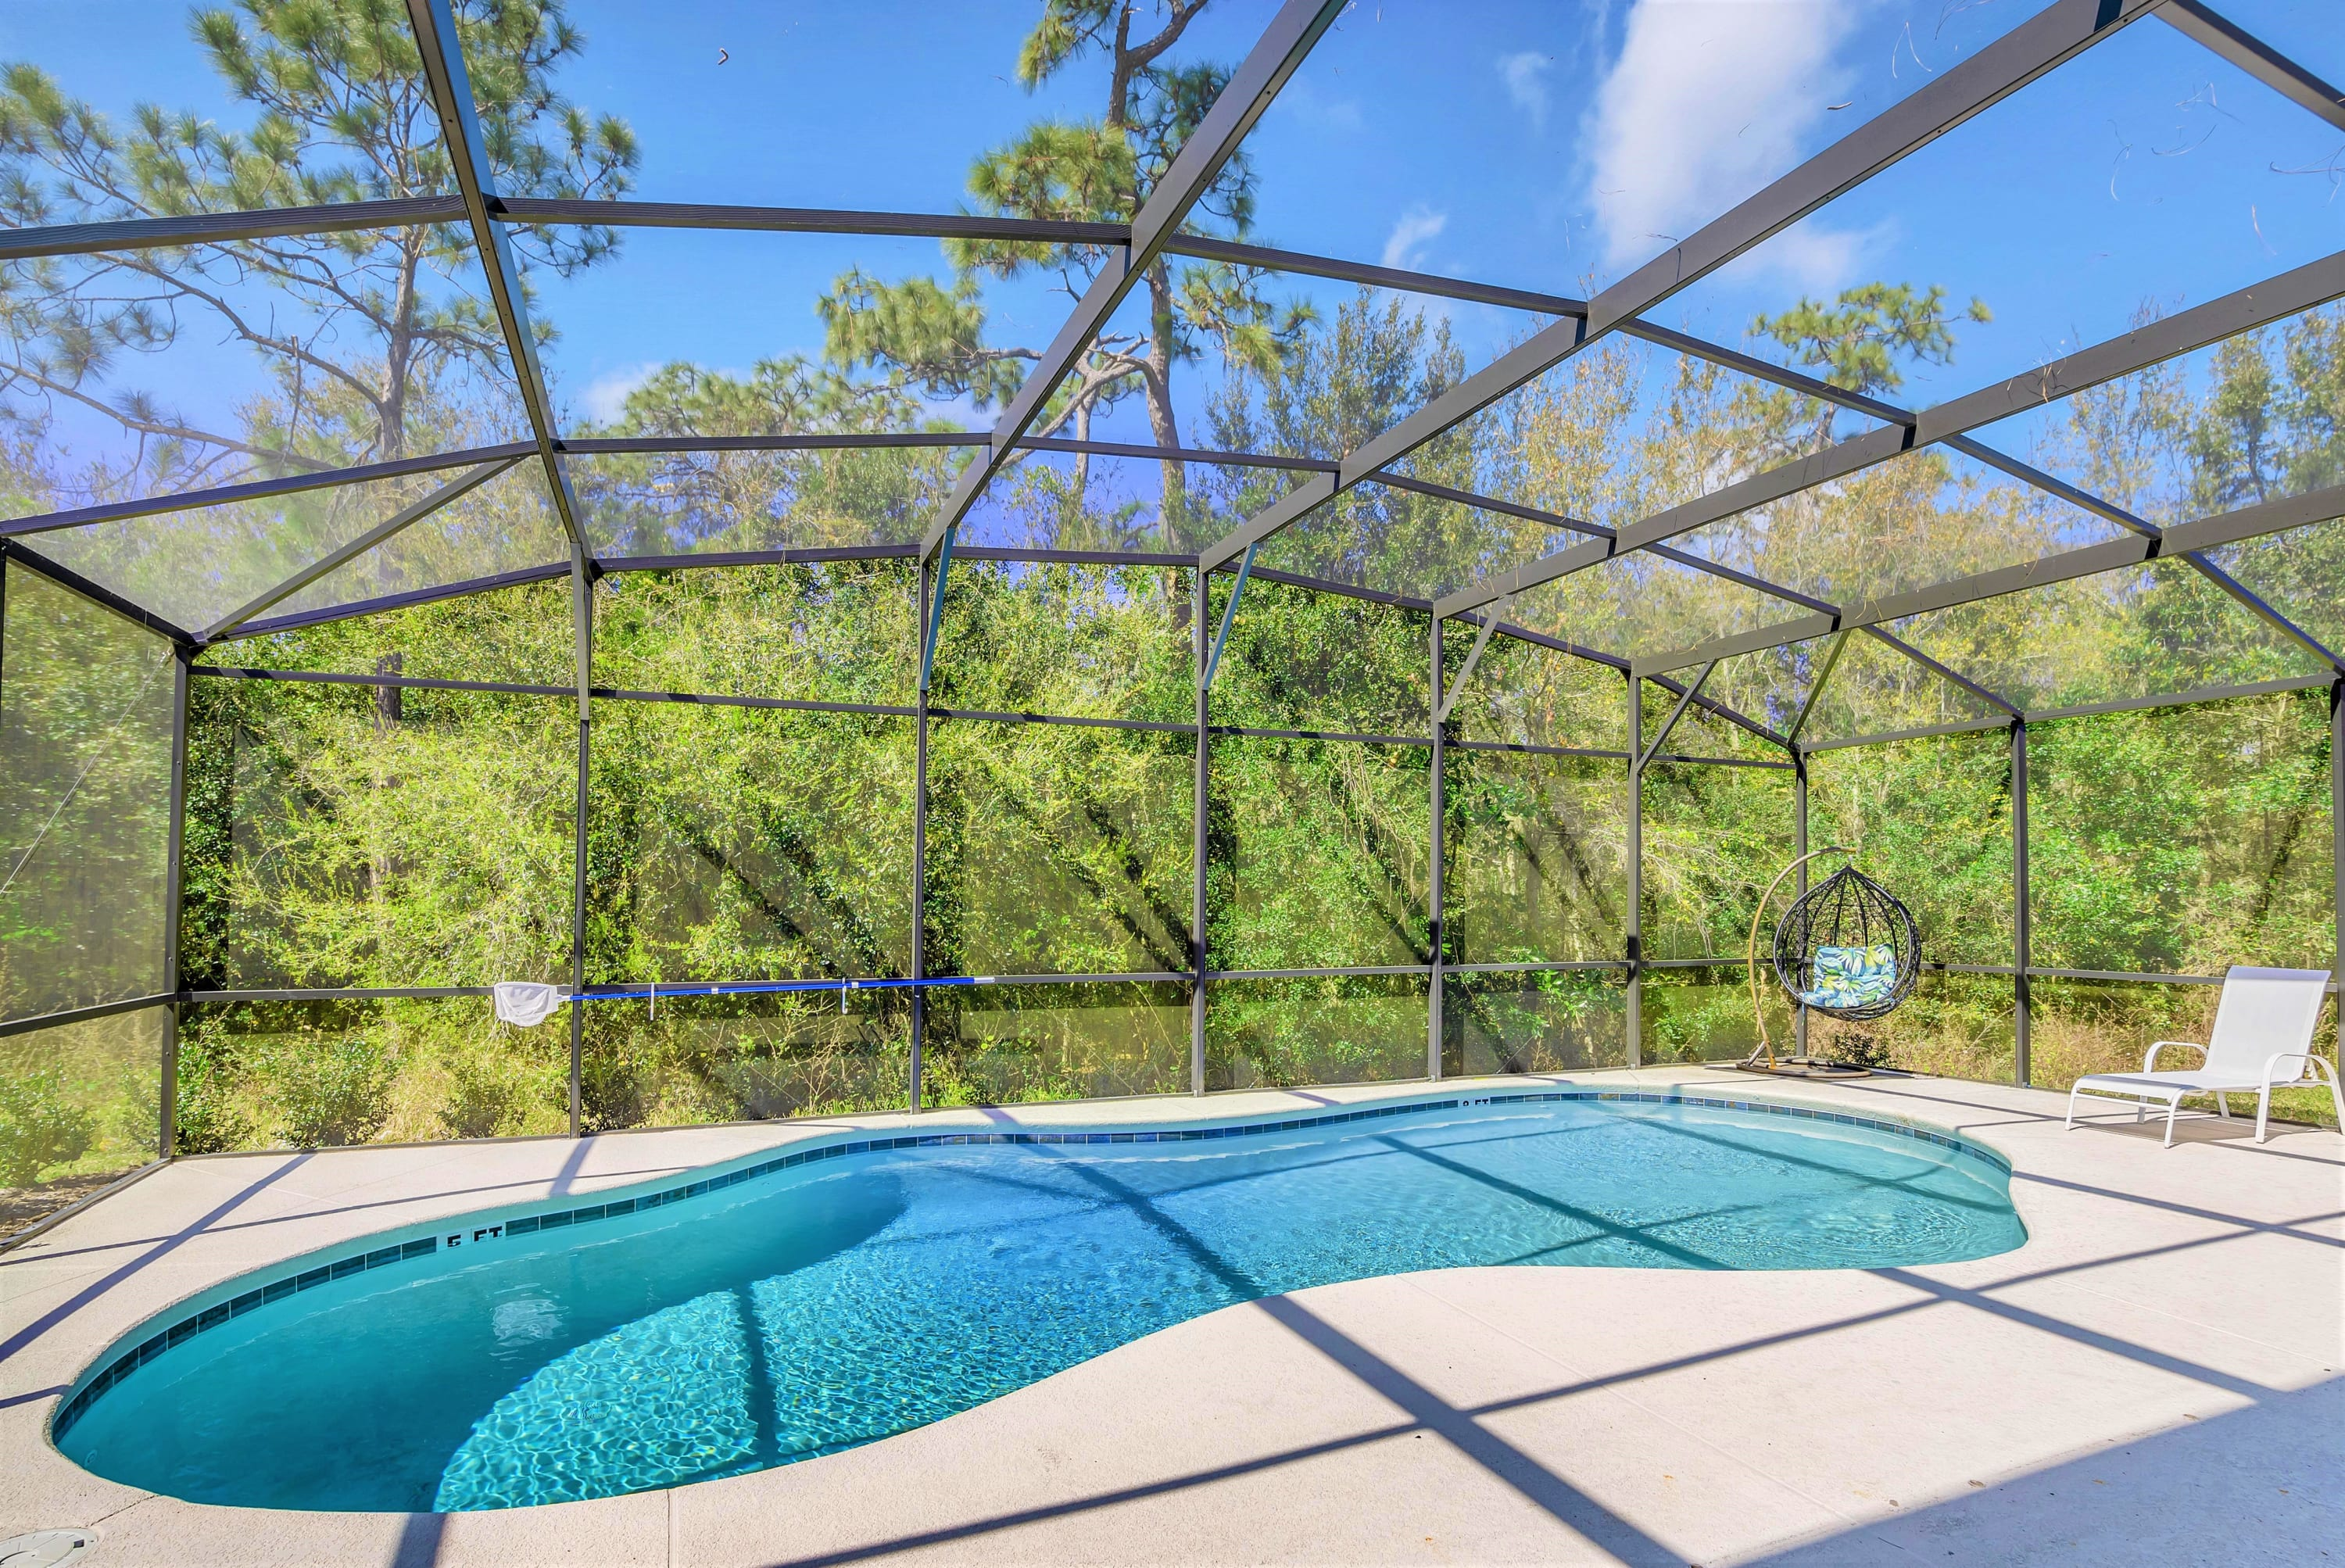 8BR Mansion by Disney - Family Resort - Private Pool and Games!